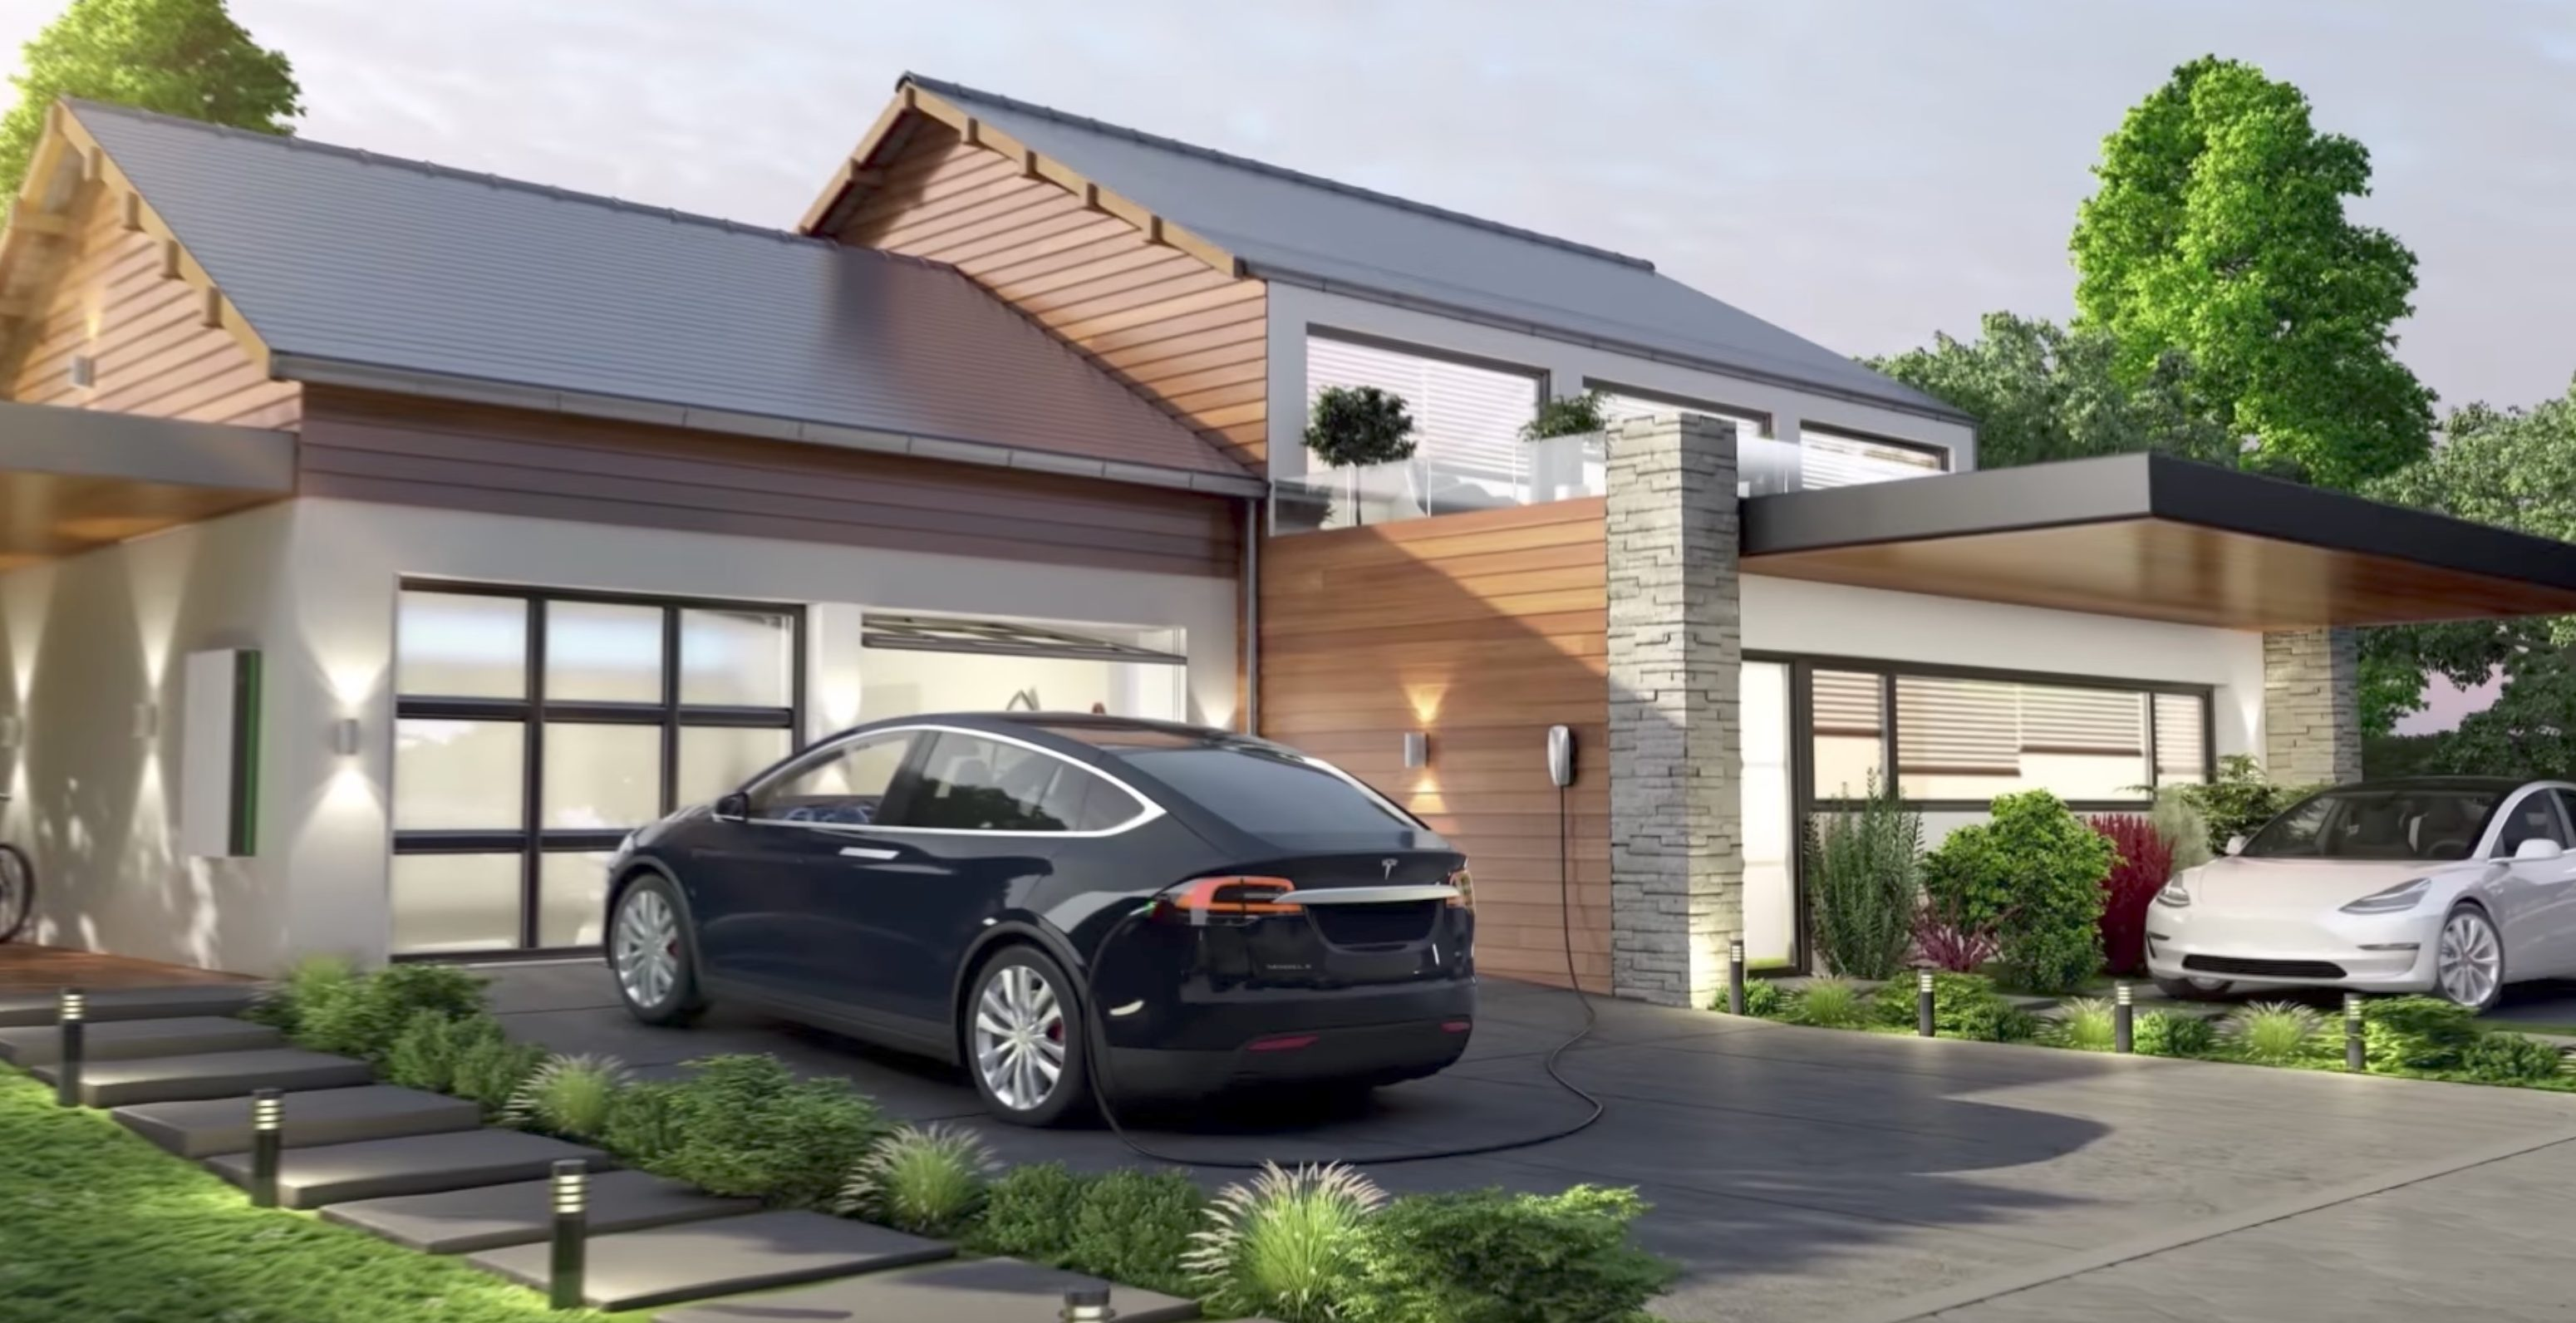 Tesla Energy: From sun to home to wheels